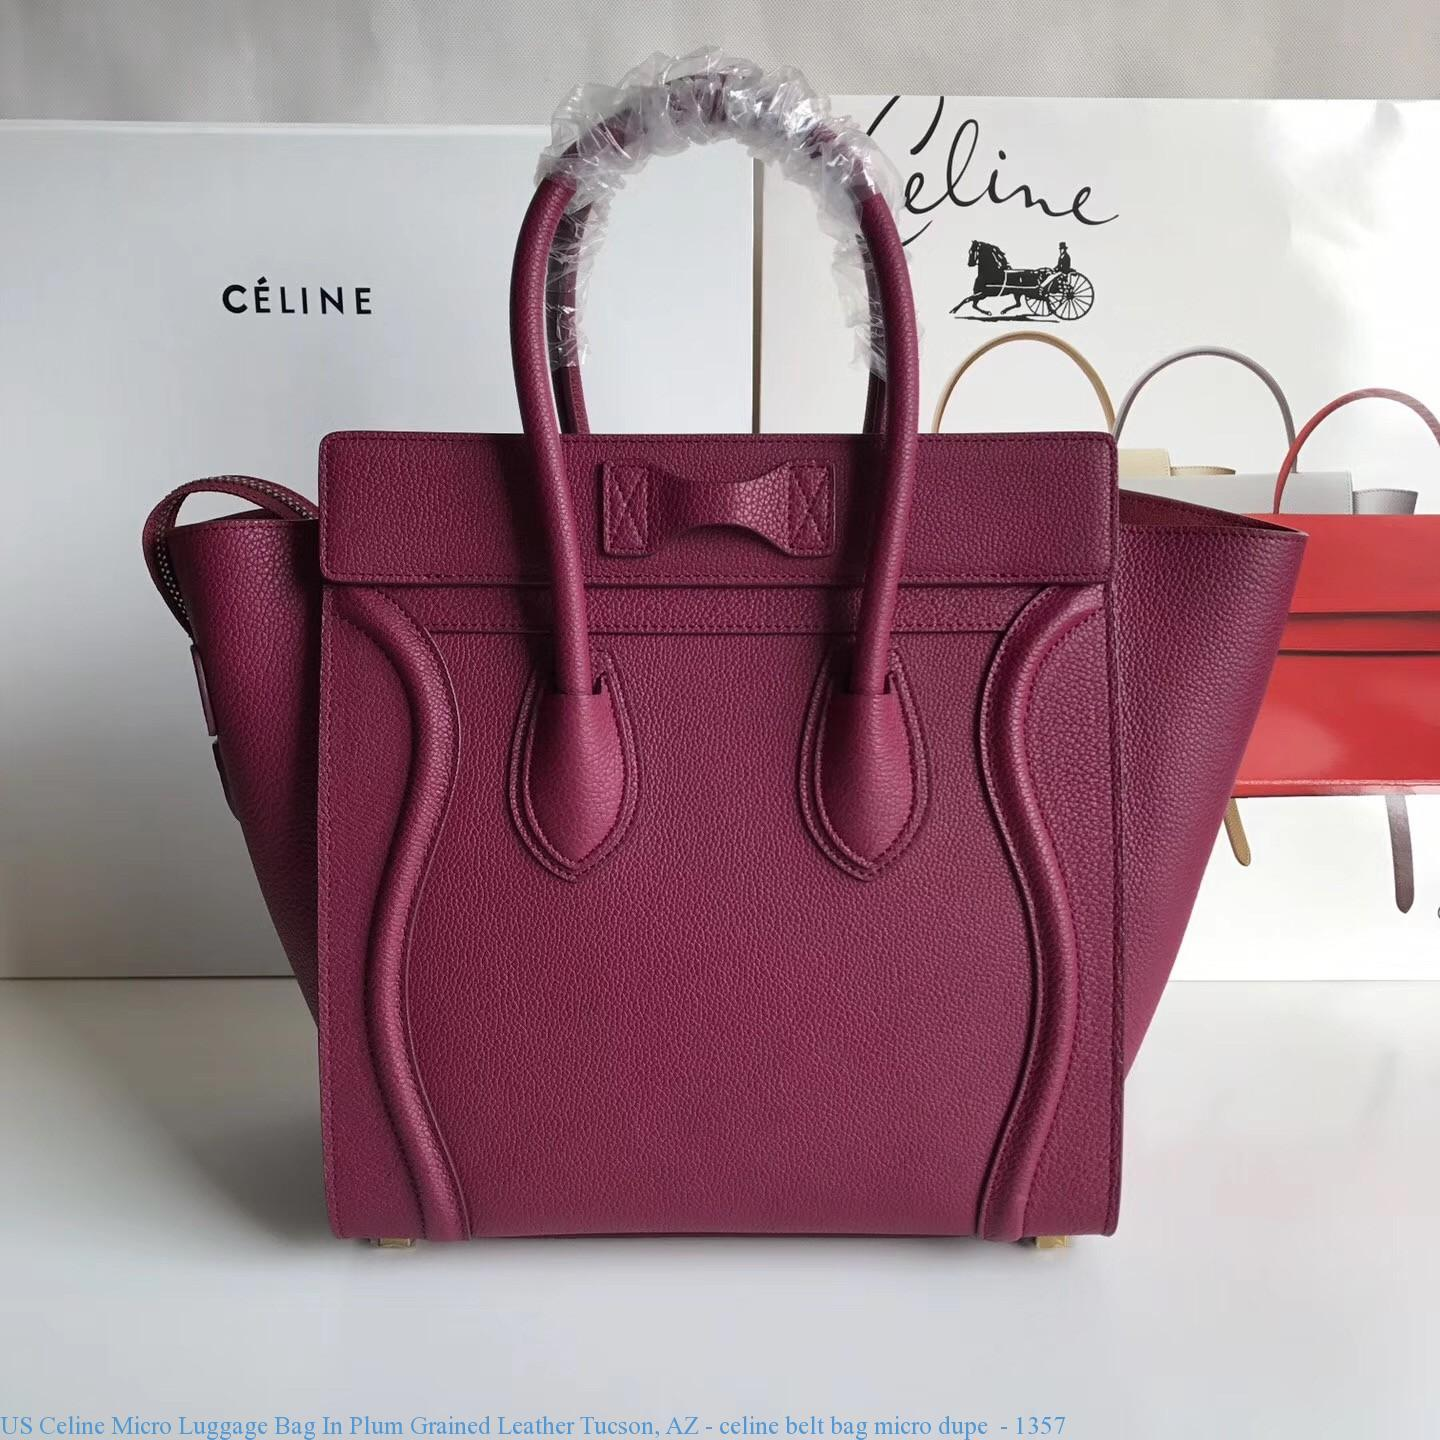 Us Celine Micro Luggage Bag In Plum Grained Leather Tucson Az Celine Belt Bag Micro Dupe 1357 Buy Cheap Celine Replica Handbags Celine Bags Outlet Store Celine Bags